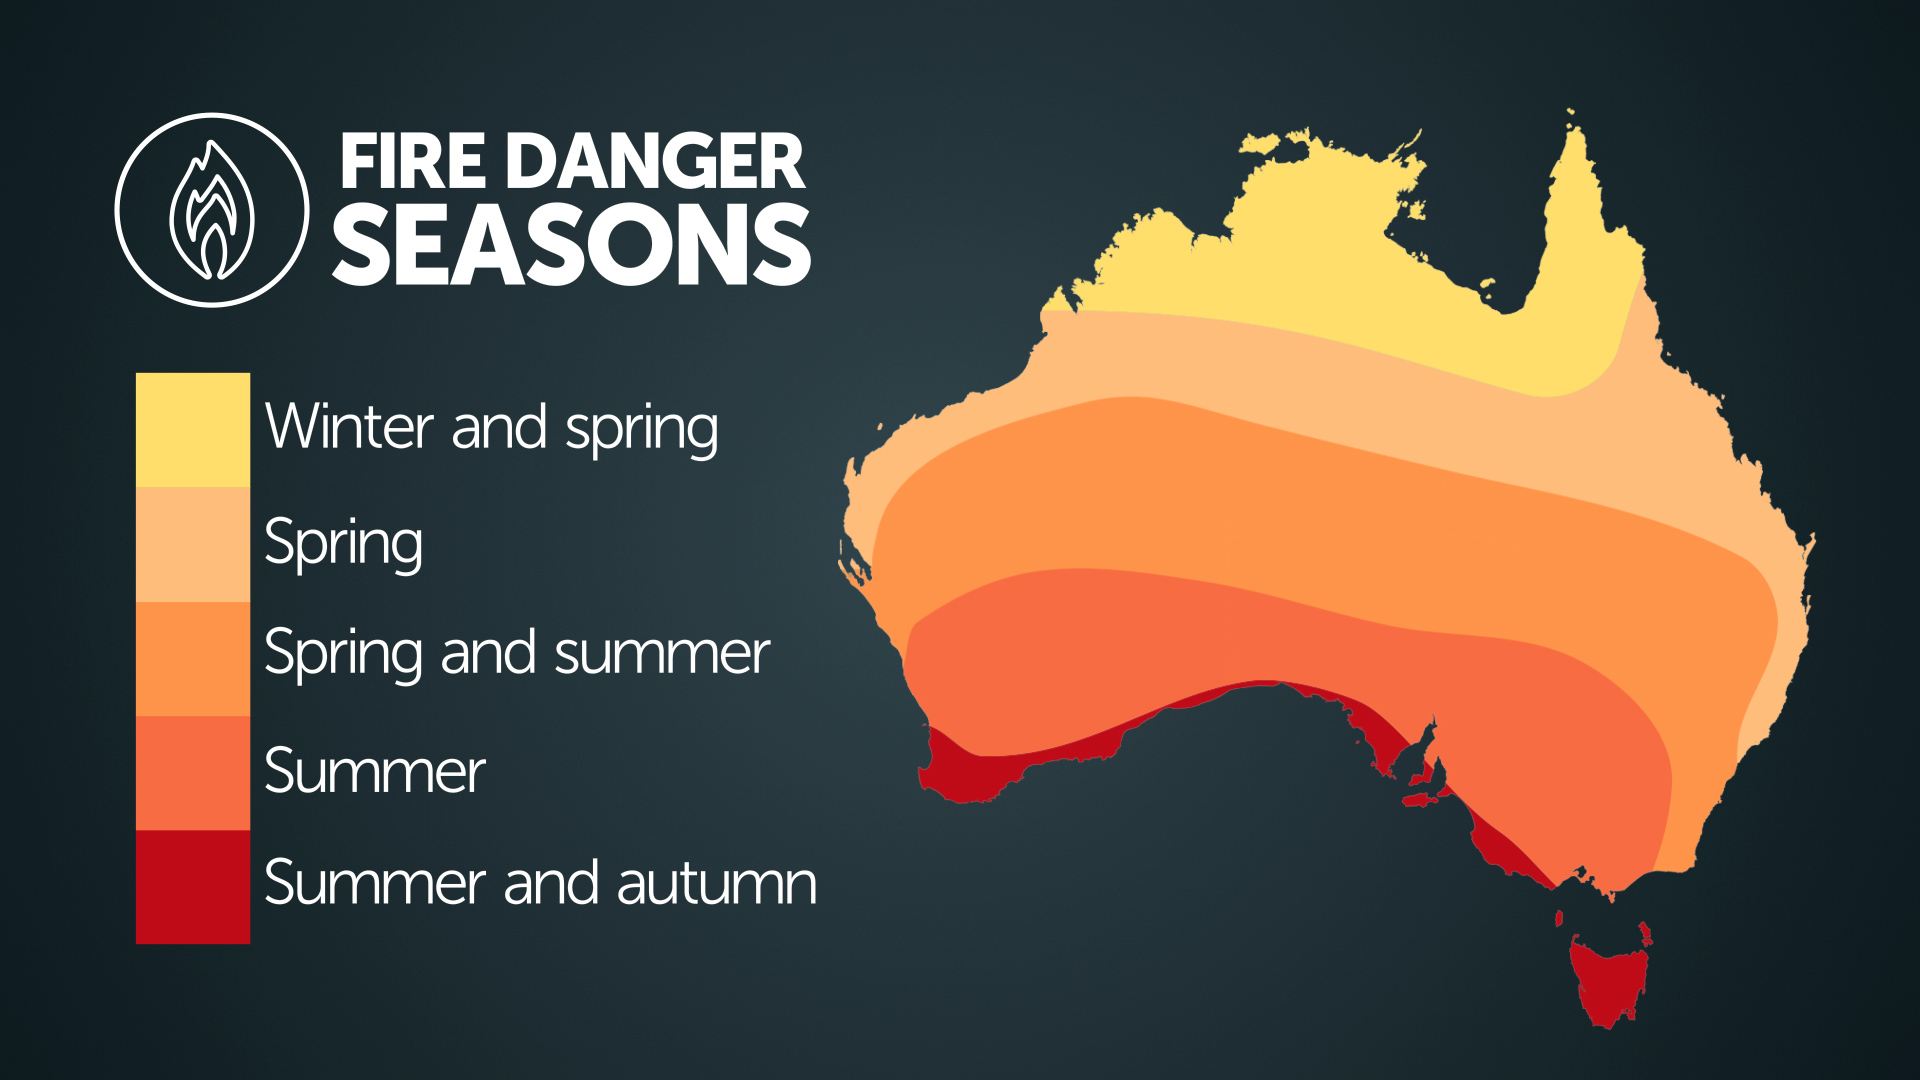 Map showing the fire seasons in Australia.